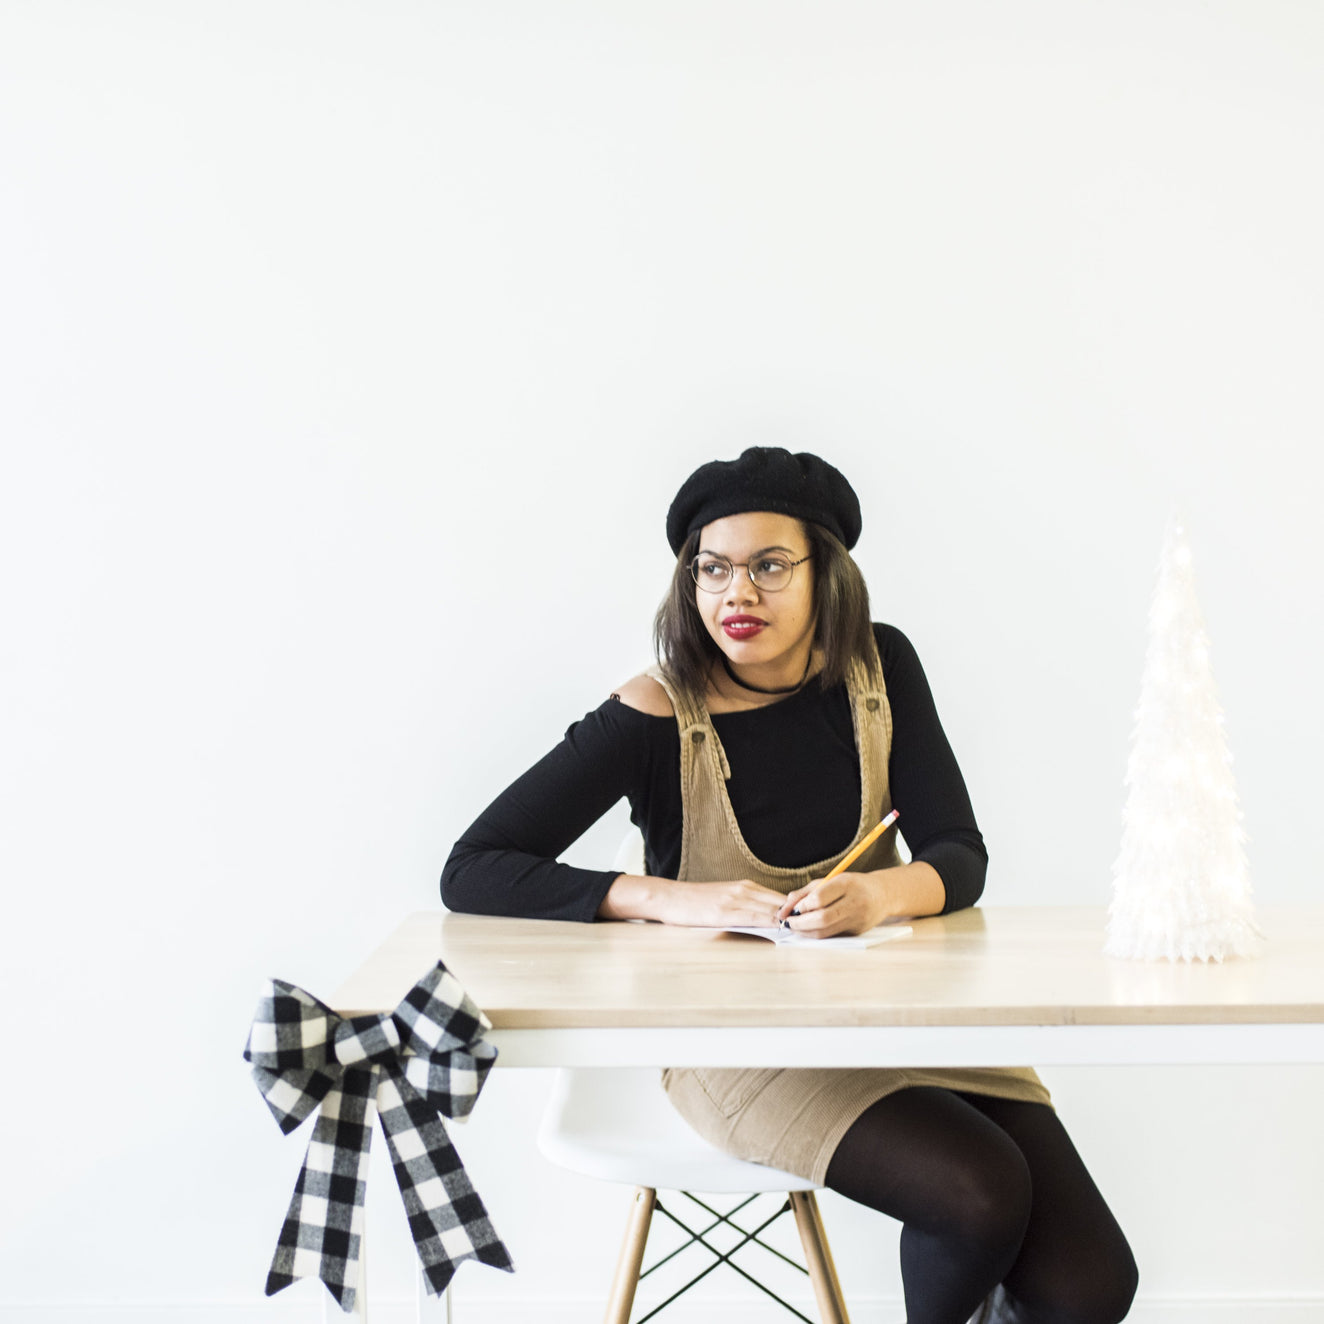 person at desk with bow and lit tree, wearing beret and red lipstick looking off while writing